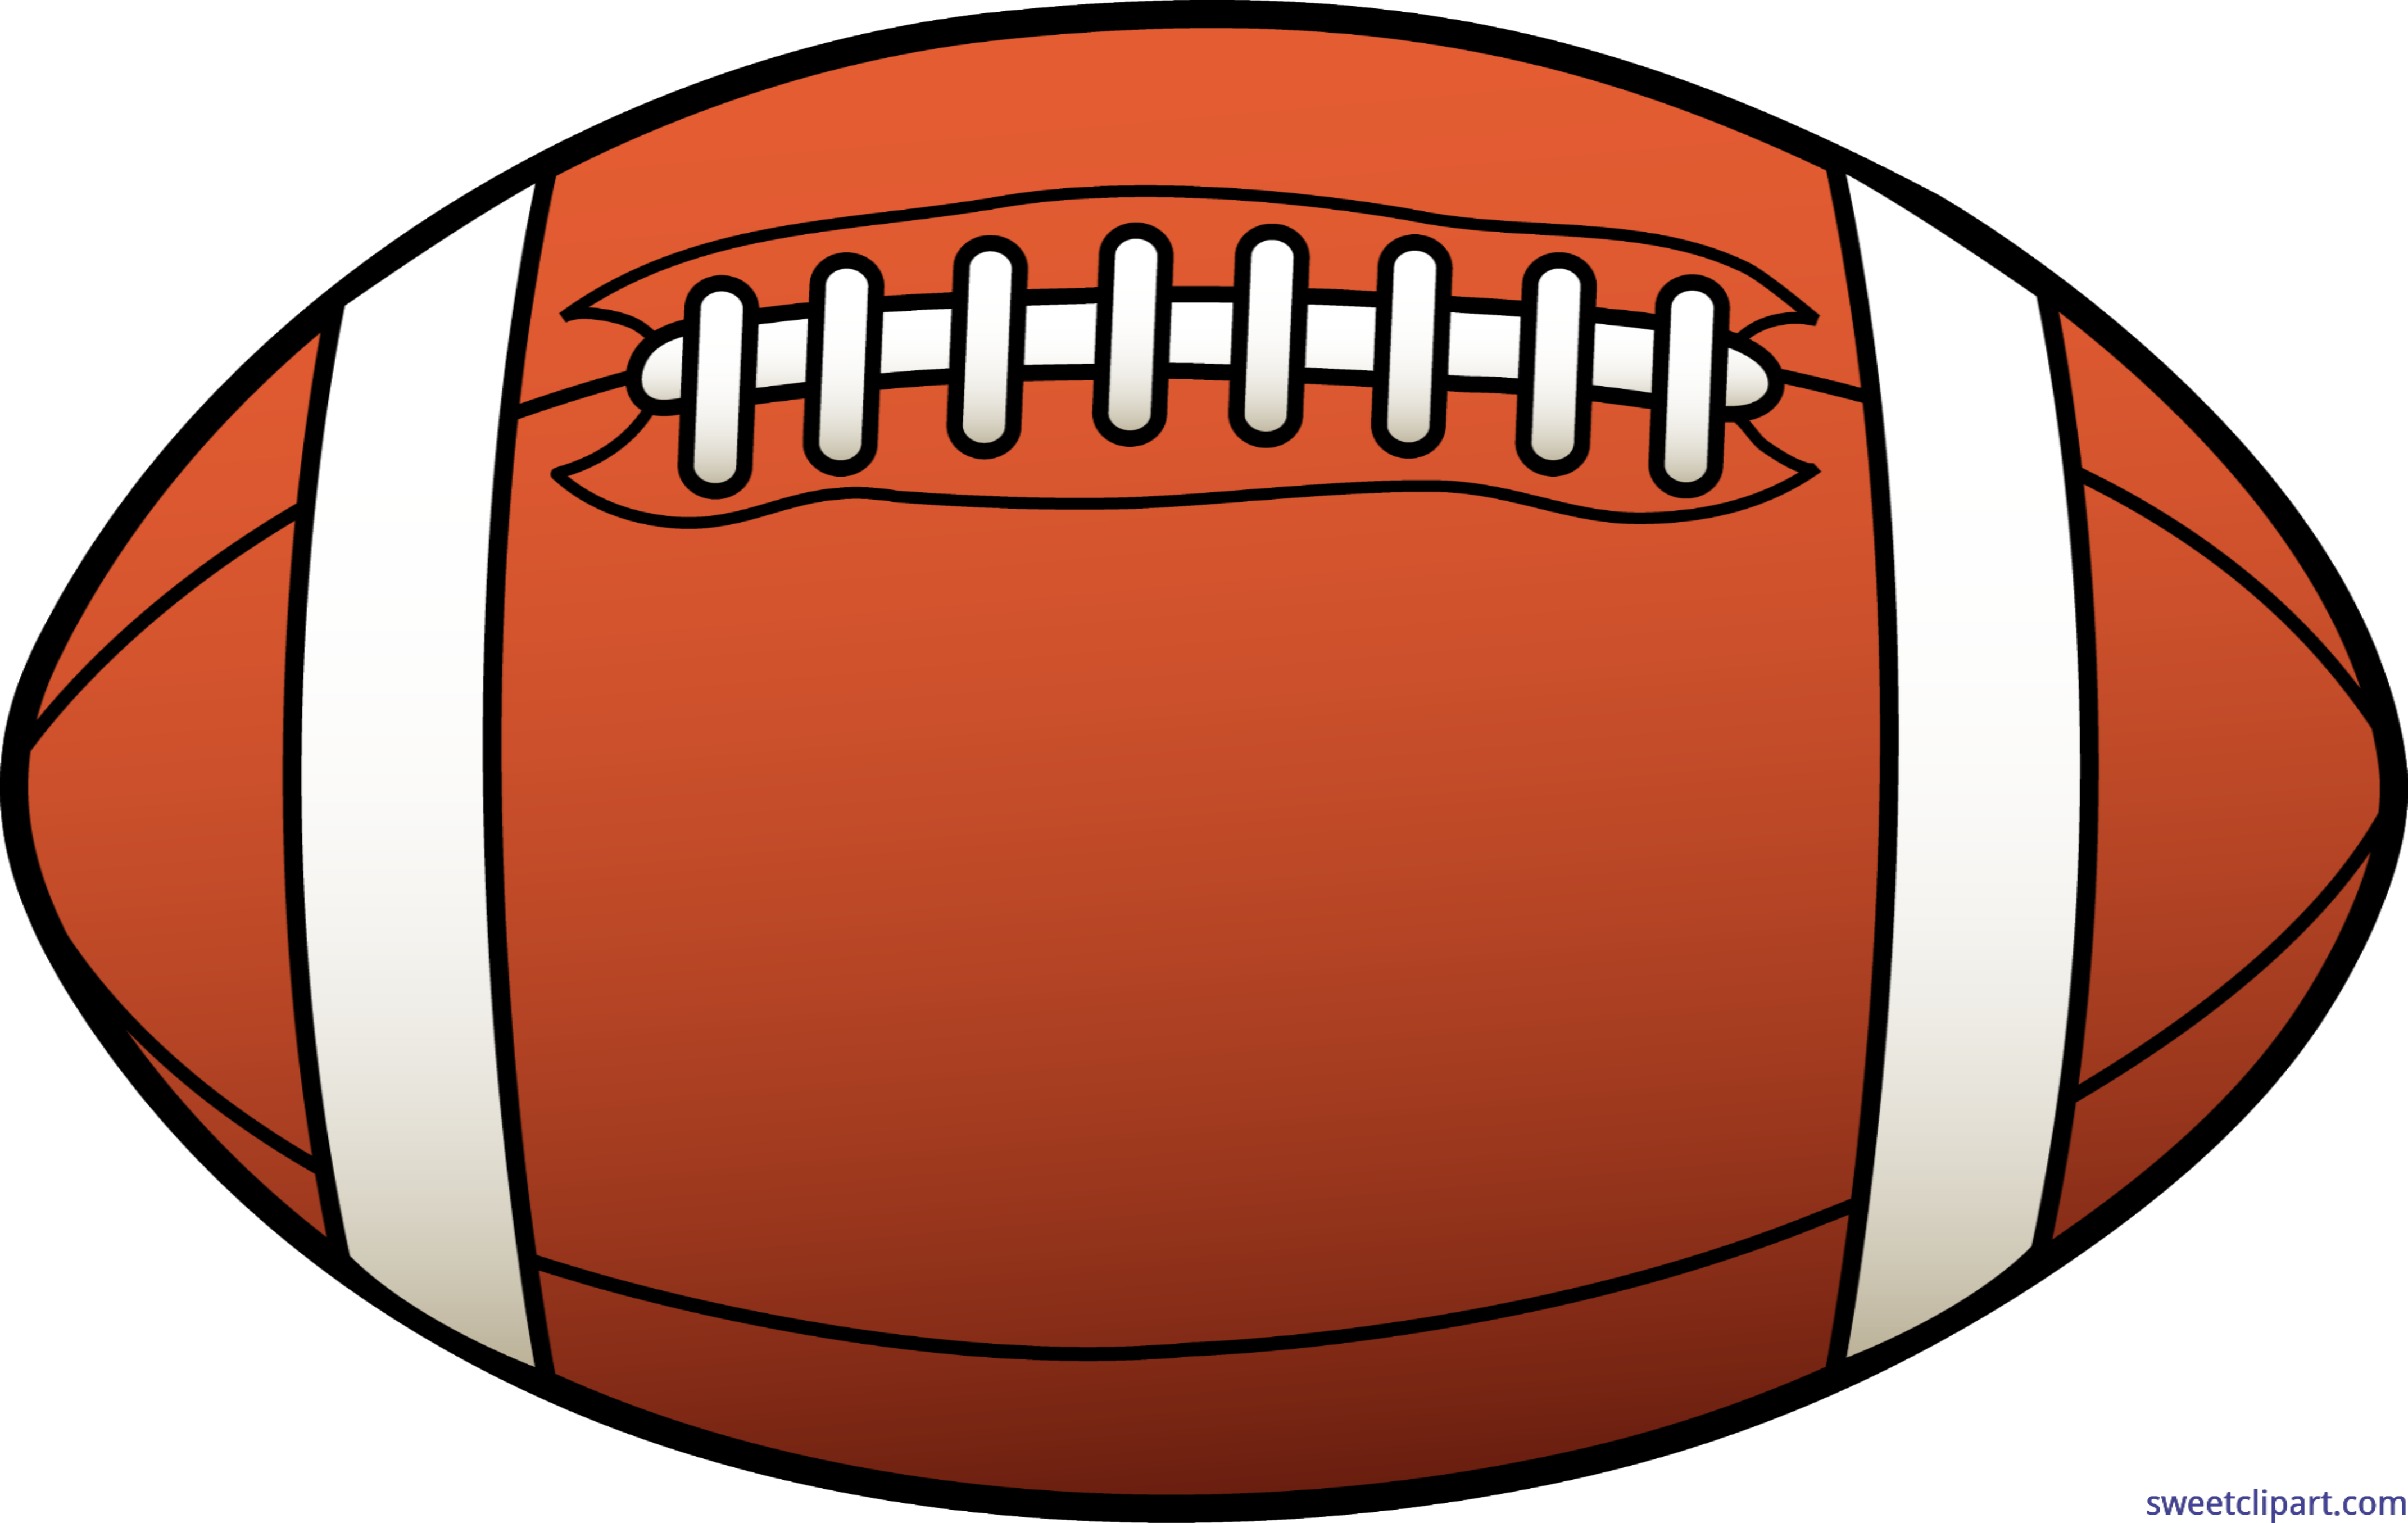 Clipart football basketball. American rugby clip art